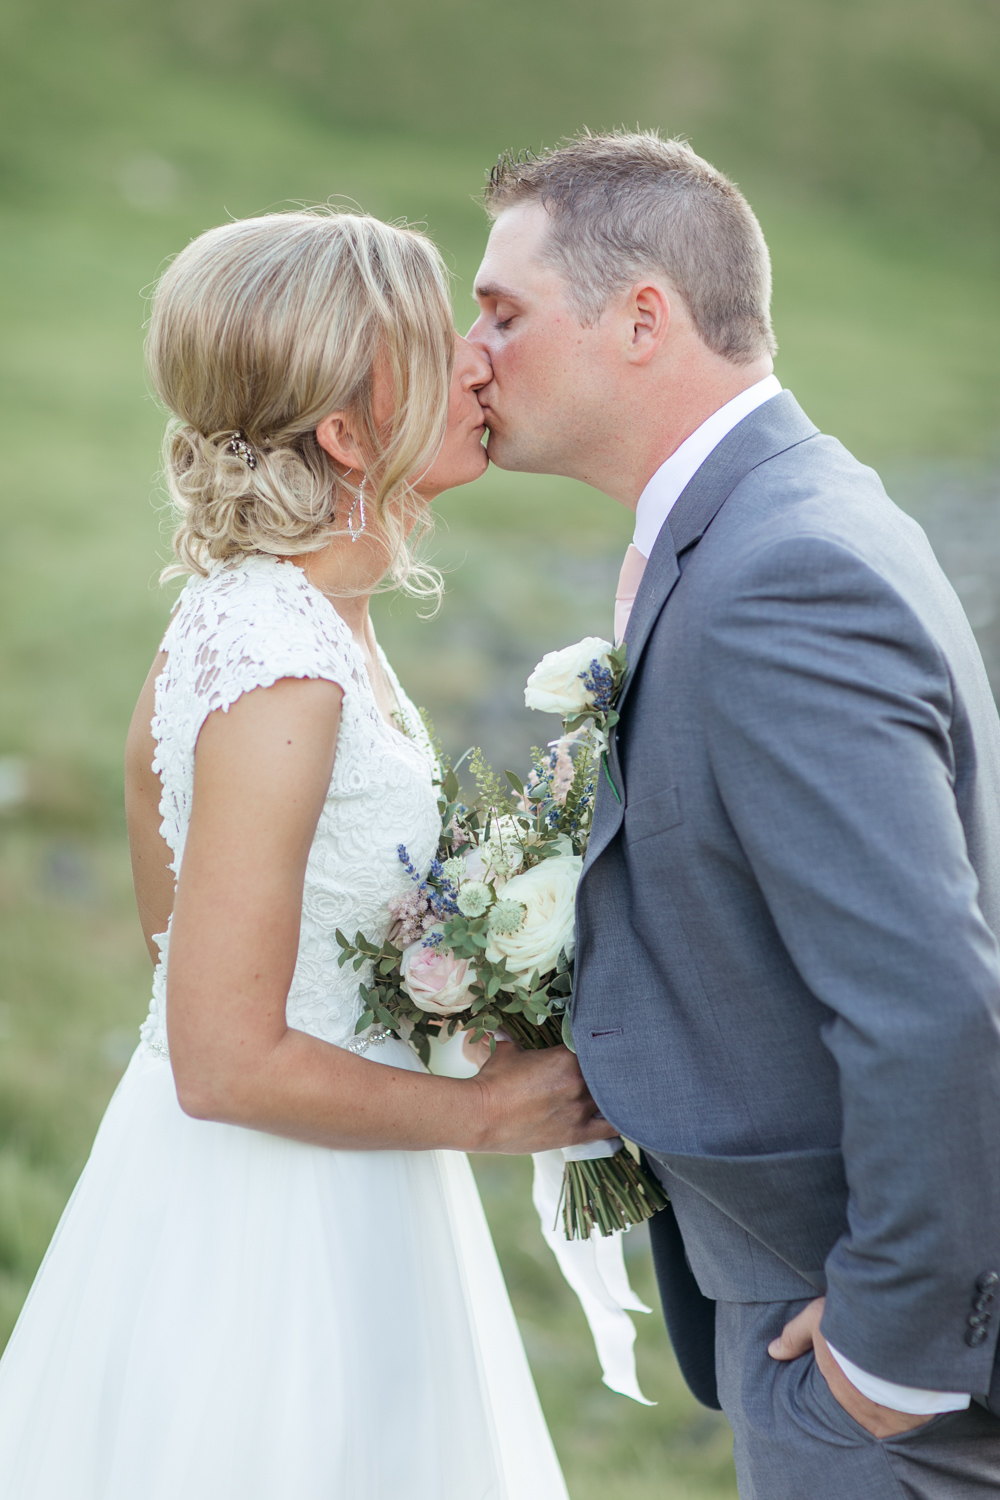 Bride and groom kissing after the ceremony in grey wedding suit and a lace wedding dress